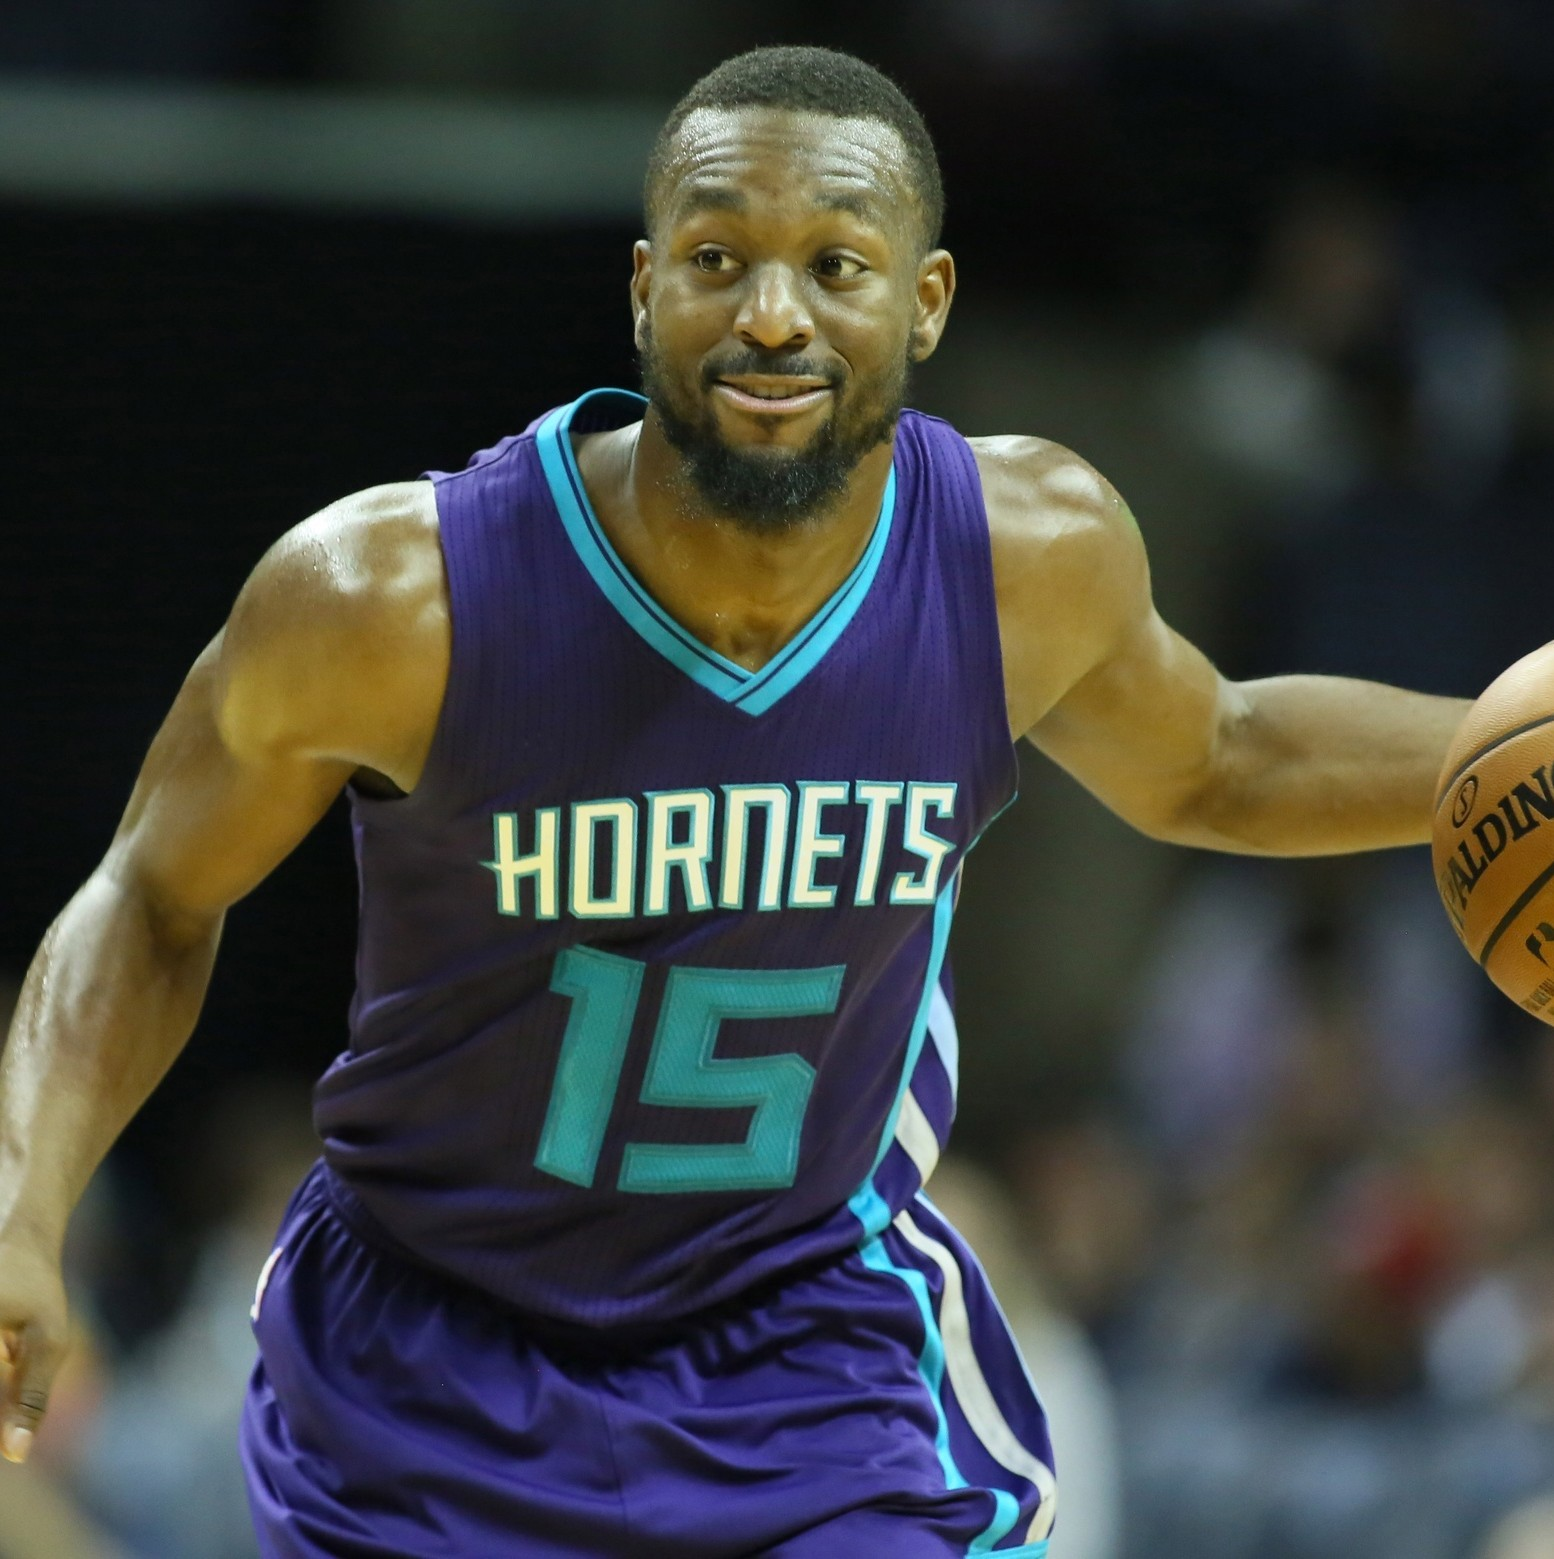 How-kemba-walker-and-the-hornets-keep-getting-better-adam-mares-nba-wraparound-1480700050.jpg?crop=0.6647173489278753xw:1xh;0